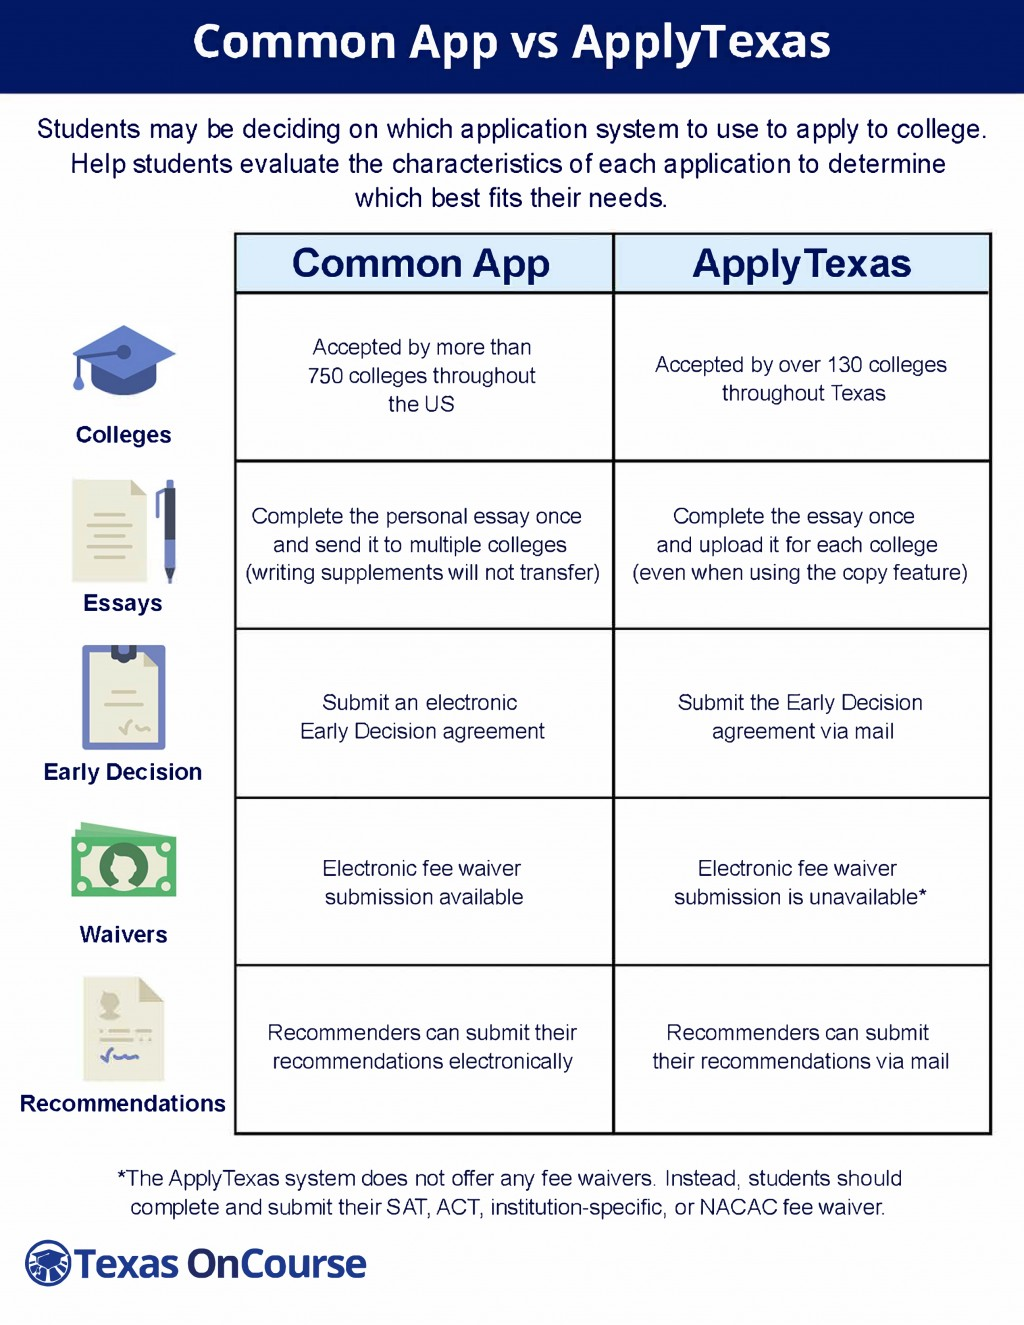 020 Essay Example Apply Texas Word Limit Common App Vs Applytexaswidth386 Frightening Requirements 2017 2019 Large